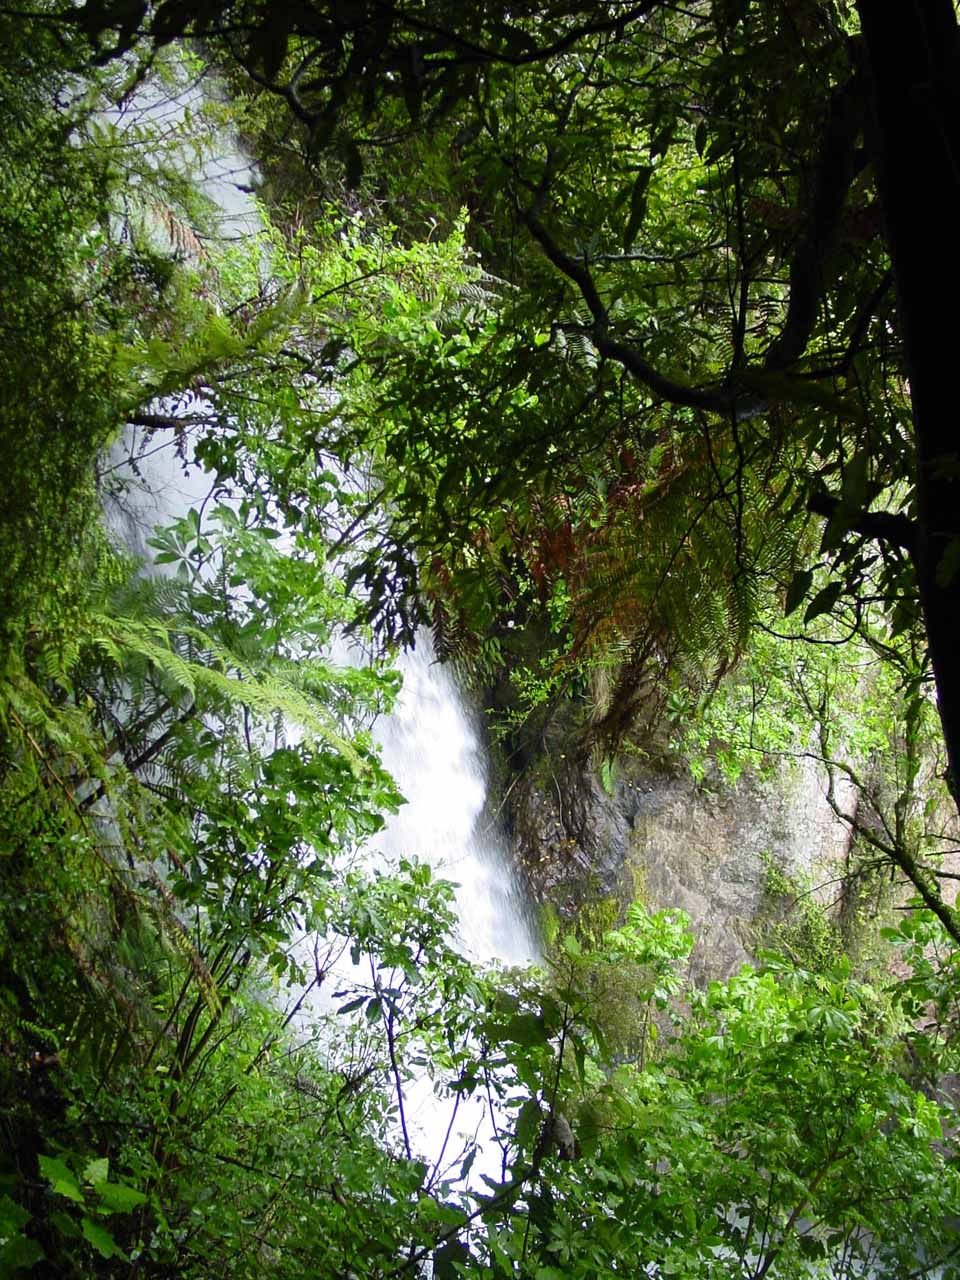 Partial view of Te Wairoa Falls as we took the bush walk detour towards the end of our excursion